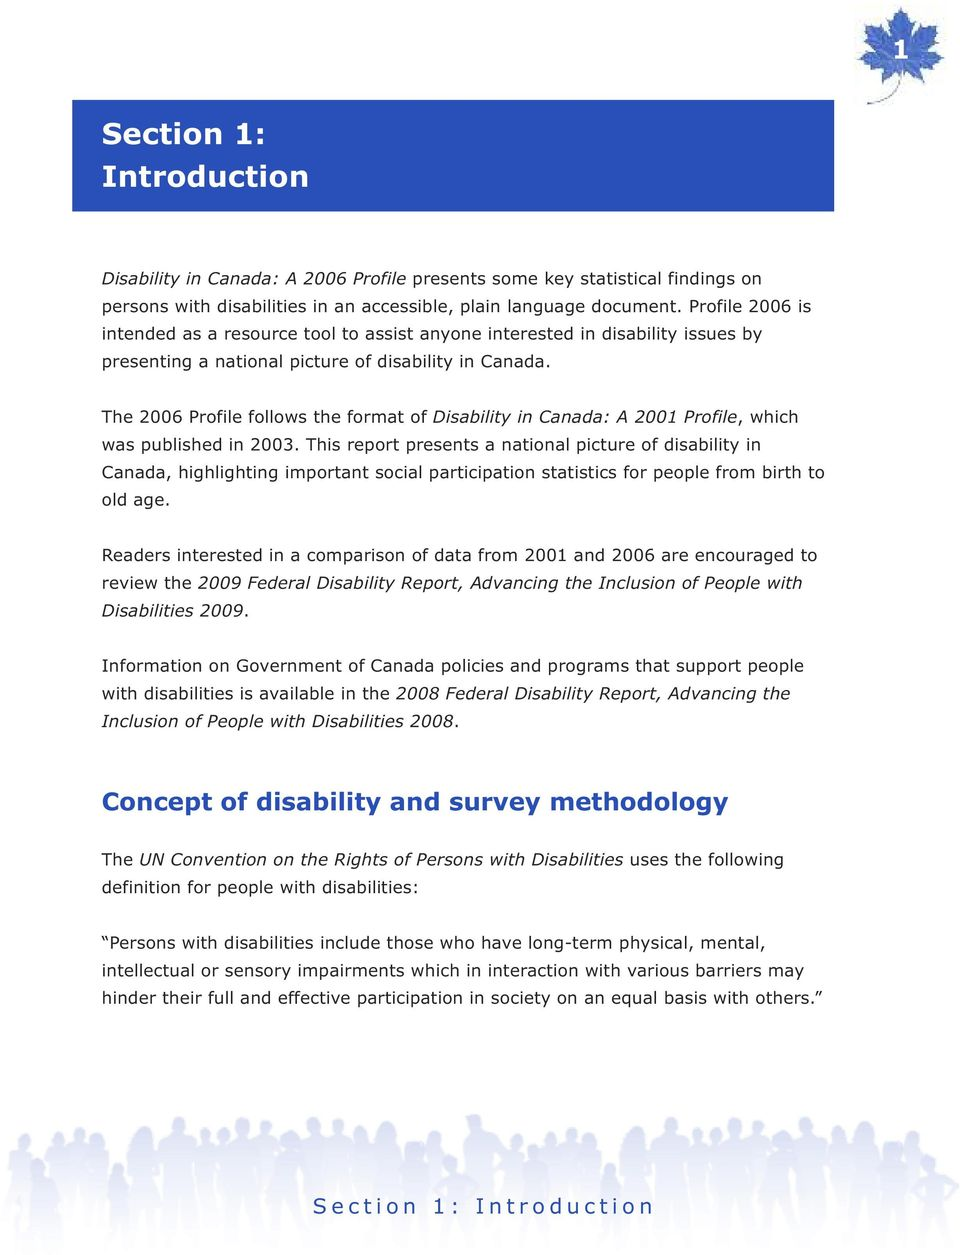 The 2006 Profile follows the format of Disability in Canada: A 2001 Profile, which was published in 2003.